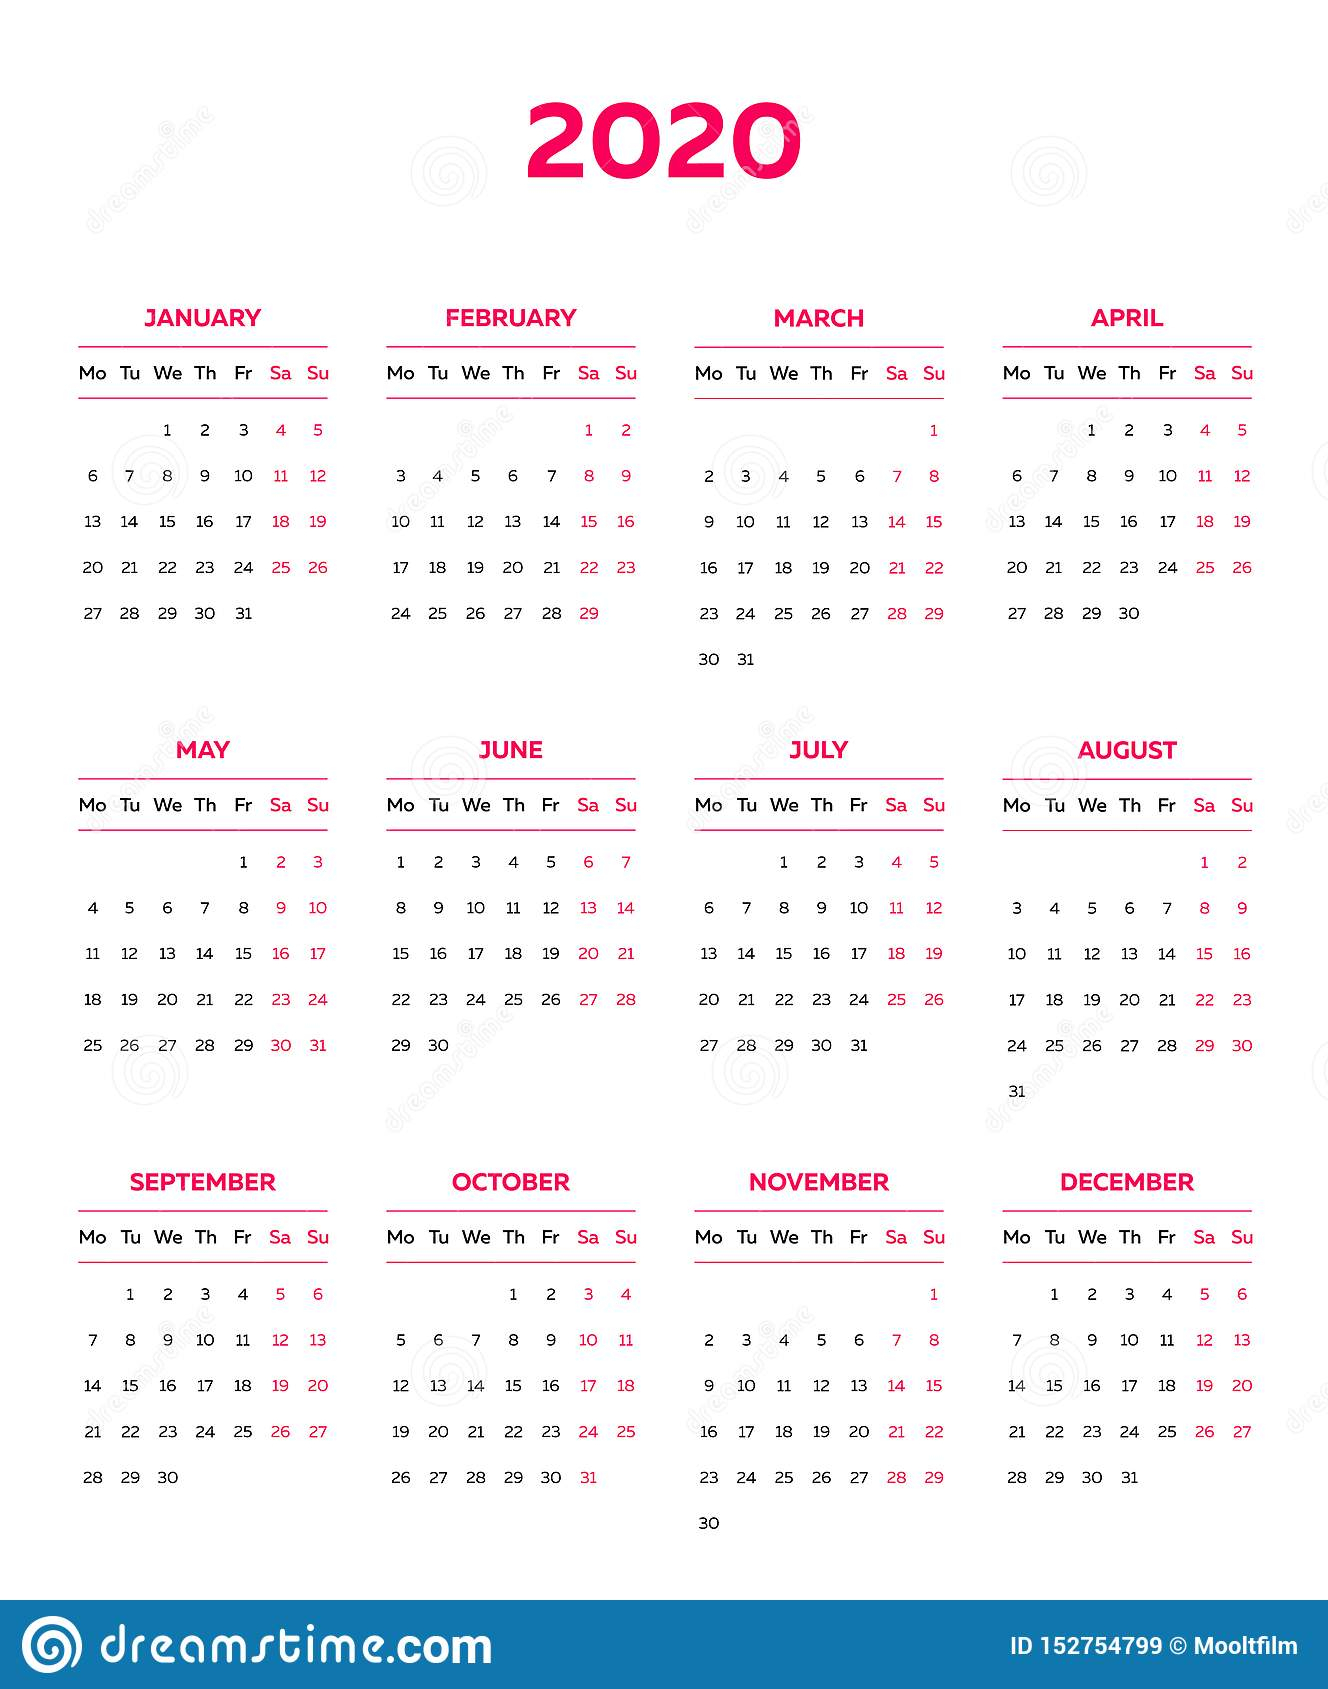 The 2020 Calendar Template With Classical Monthly Columns